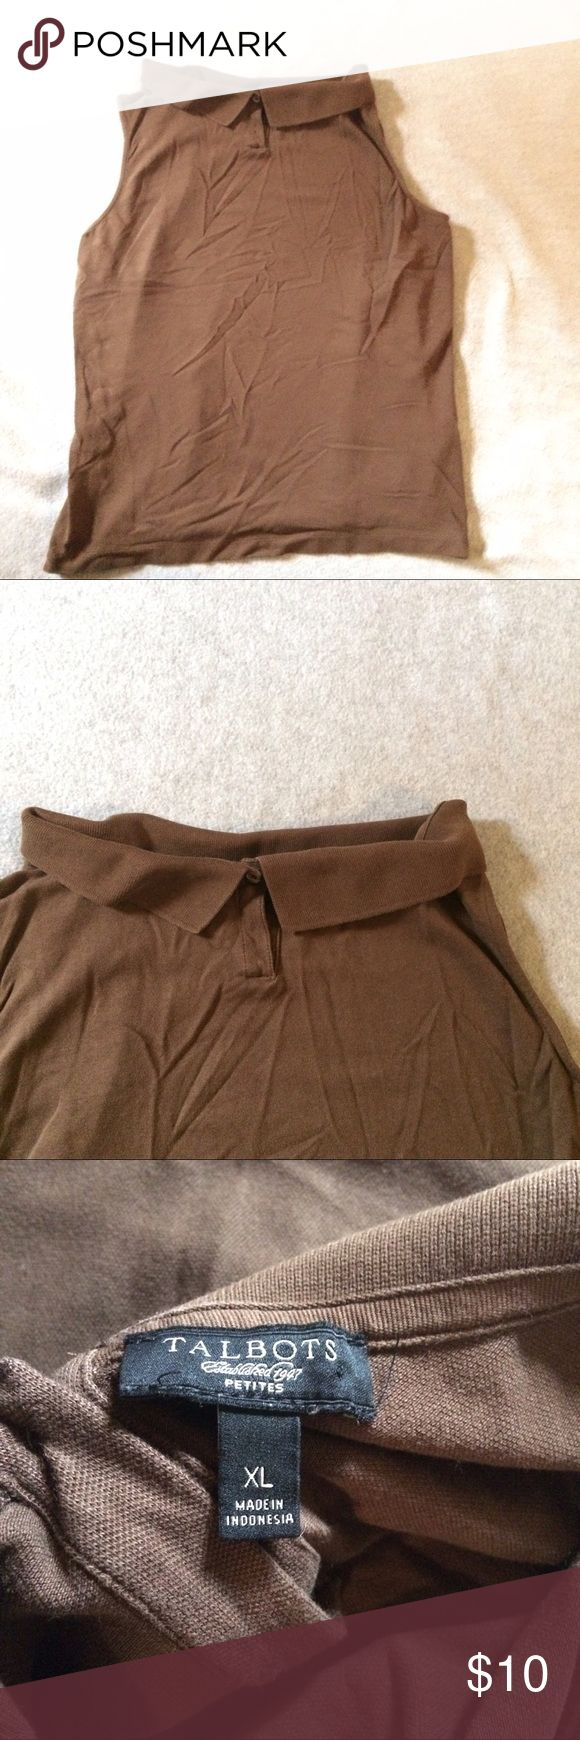 Talbots Petites Top Sleeveless Button Down Collar Simple brown collared sleeveless top great for casual wear or an outdoor activity. Item is in great pre-owned condition, stored in a smoke free home. No rips, tears, holes, snags, or stains.     Size is a Women's X-Large.     Materials: 56% Cotton / 40% Modal / 4% Spandex Talbots Tops